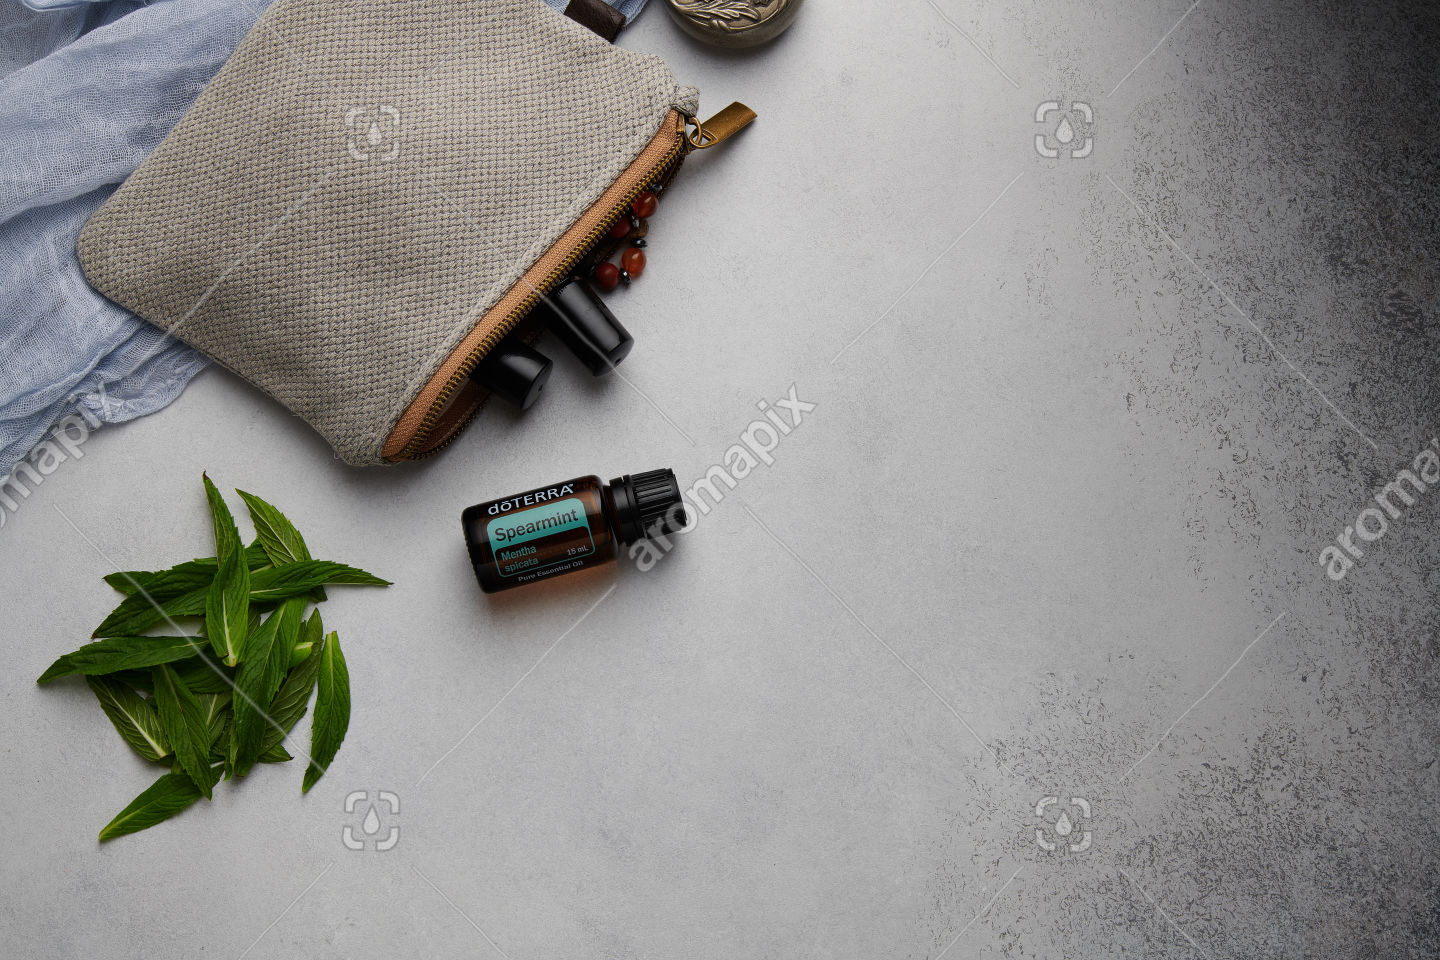 doTERRA Spearmint with mint leaves on white